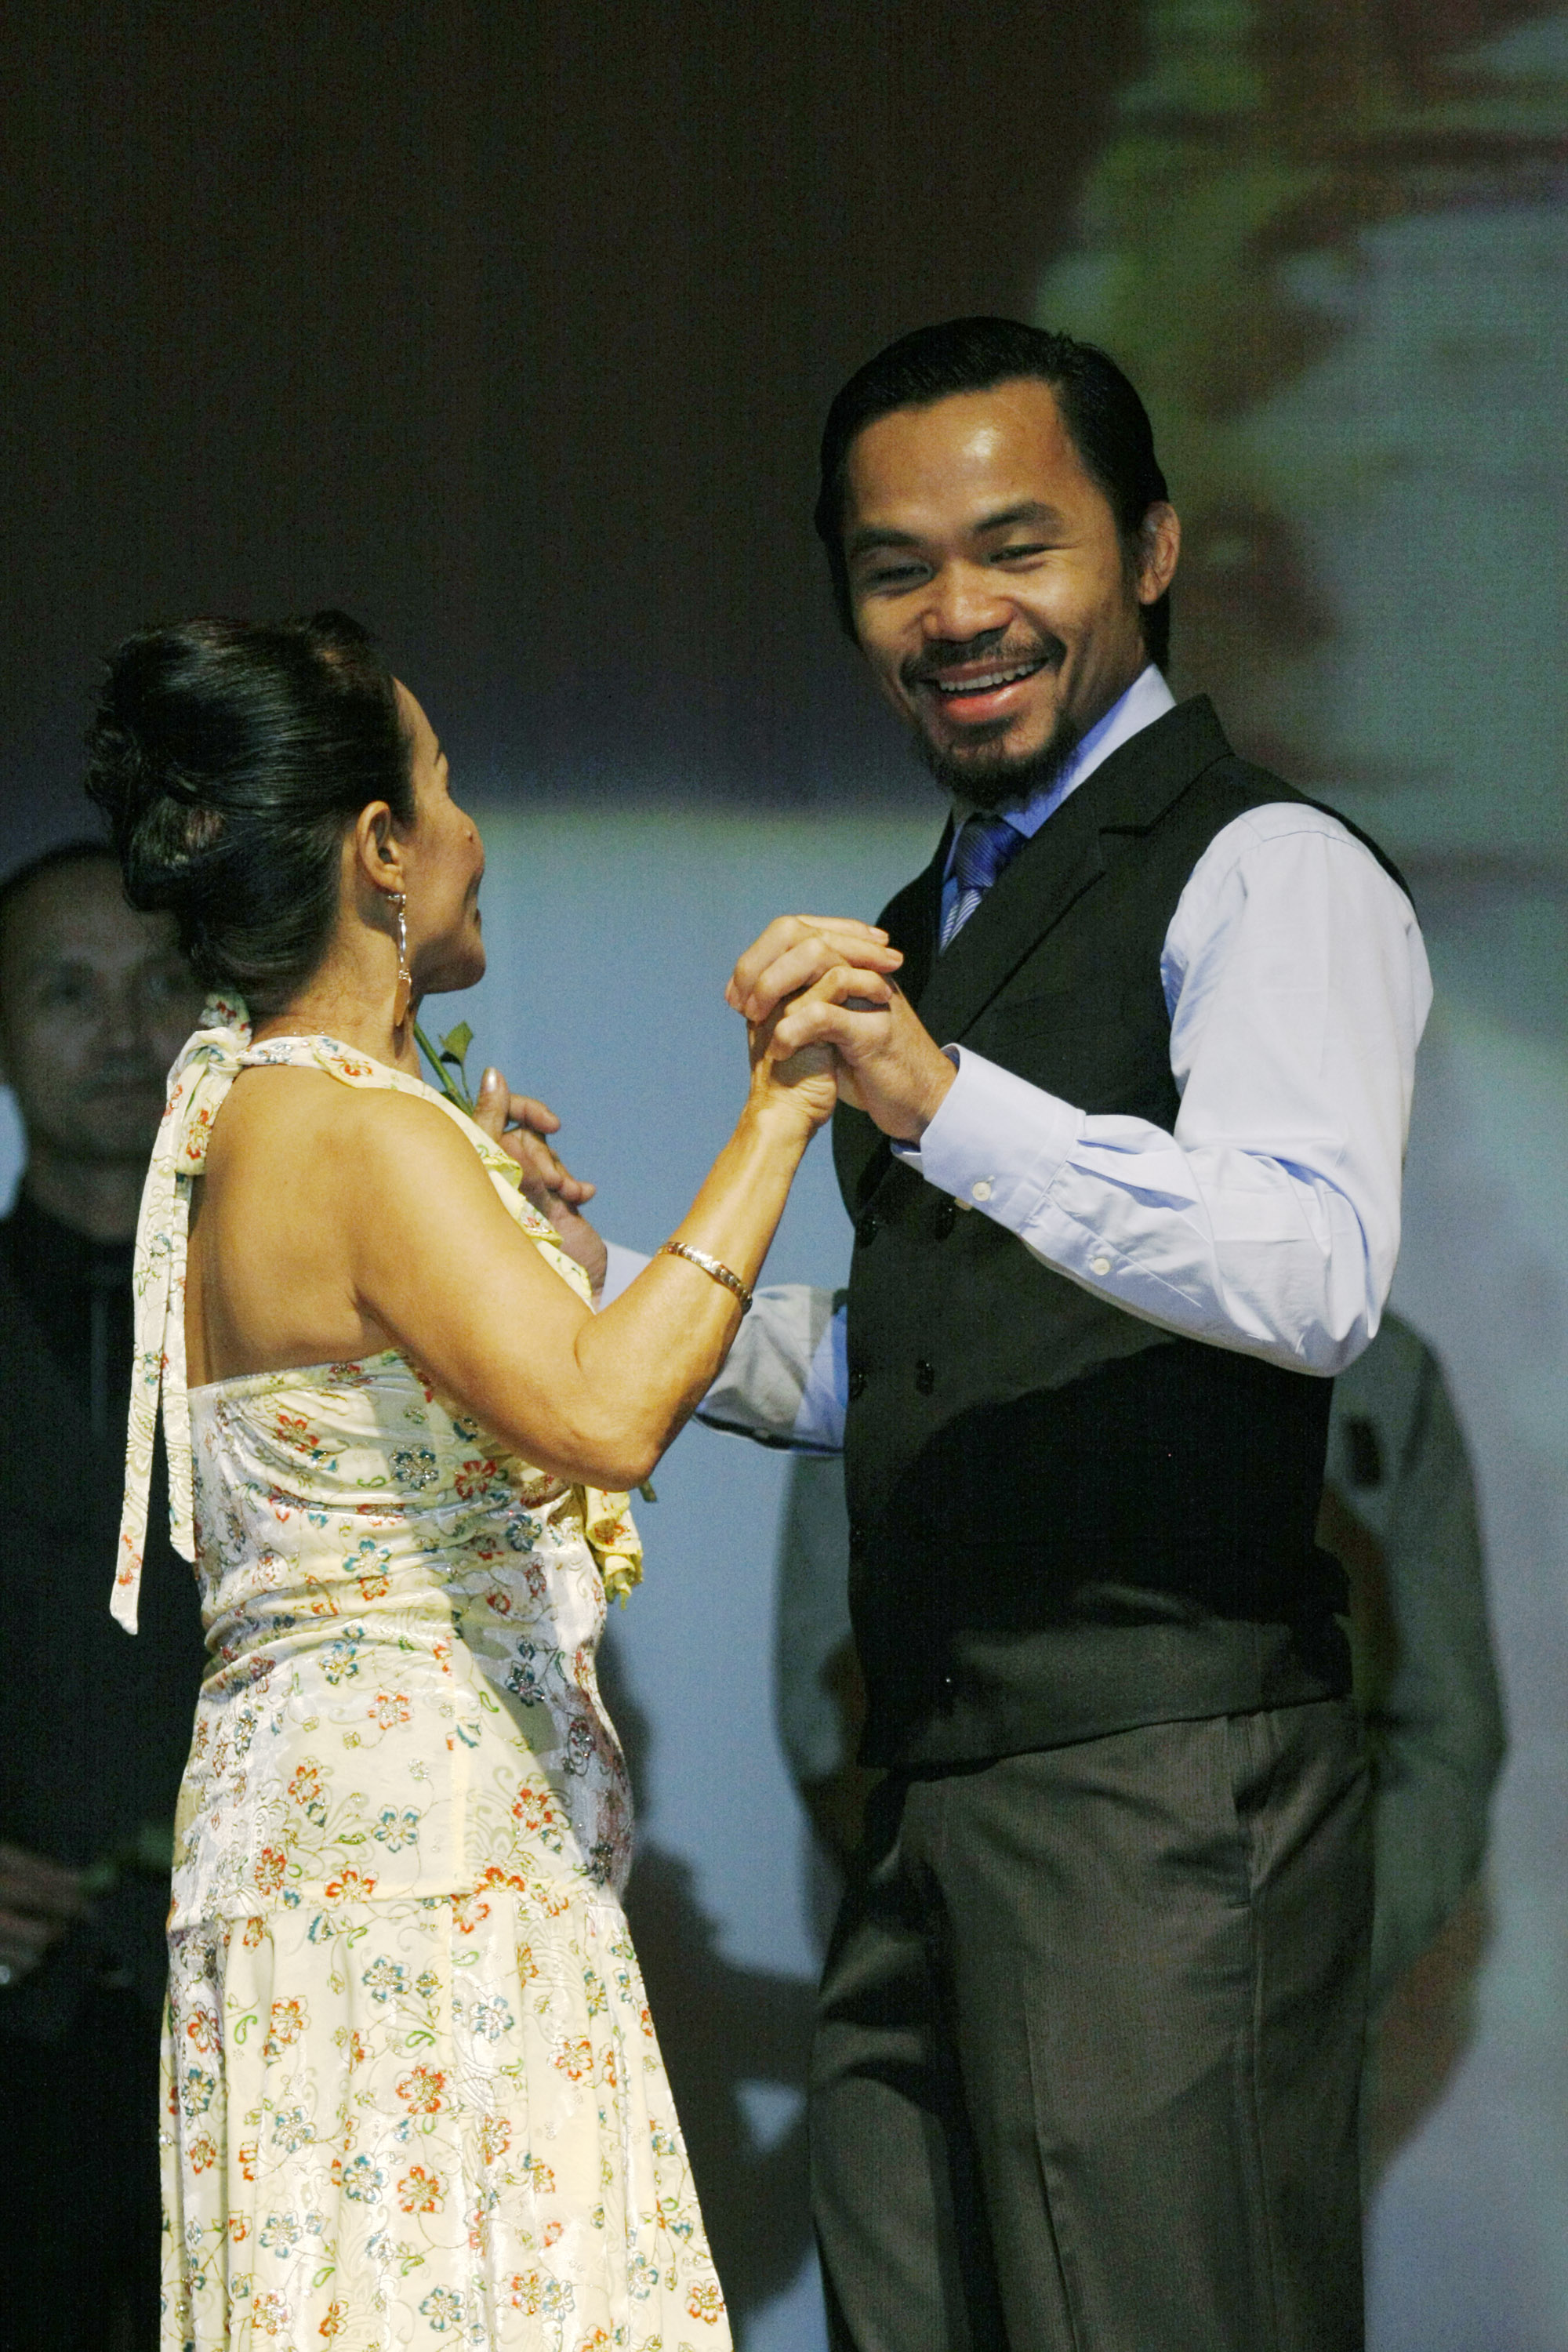 GENERAL SANTOS, PHILIPPINES - MAY 15:  World welterweight boxing champion Manny Pacquiao is seen with his mother Dionisia Pacquiao at the KCC Mall on May 15, 2010 in General Santos, Philippines. Pacquiao was there to celebrate his election on becoming a m